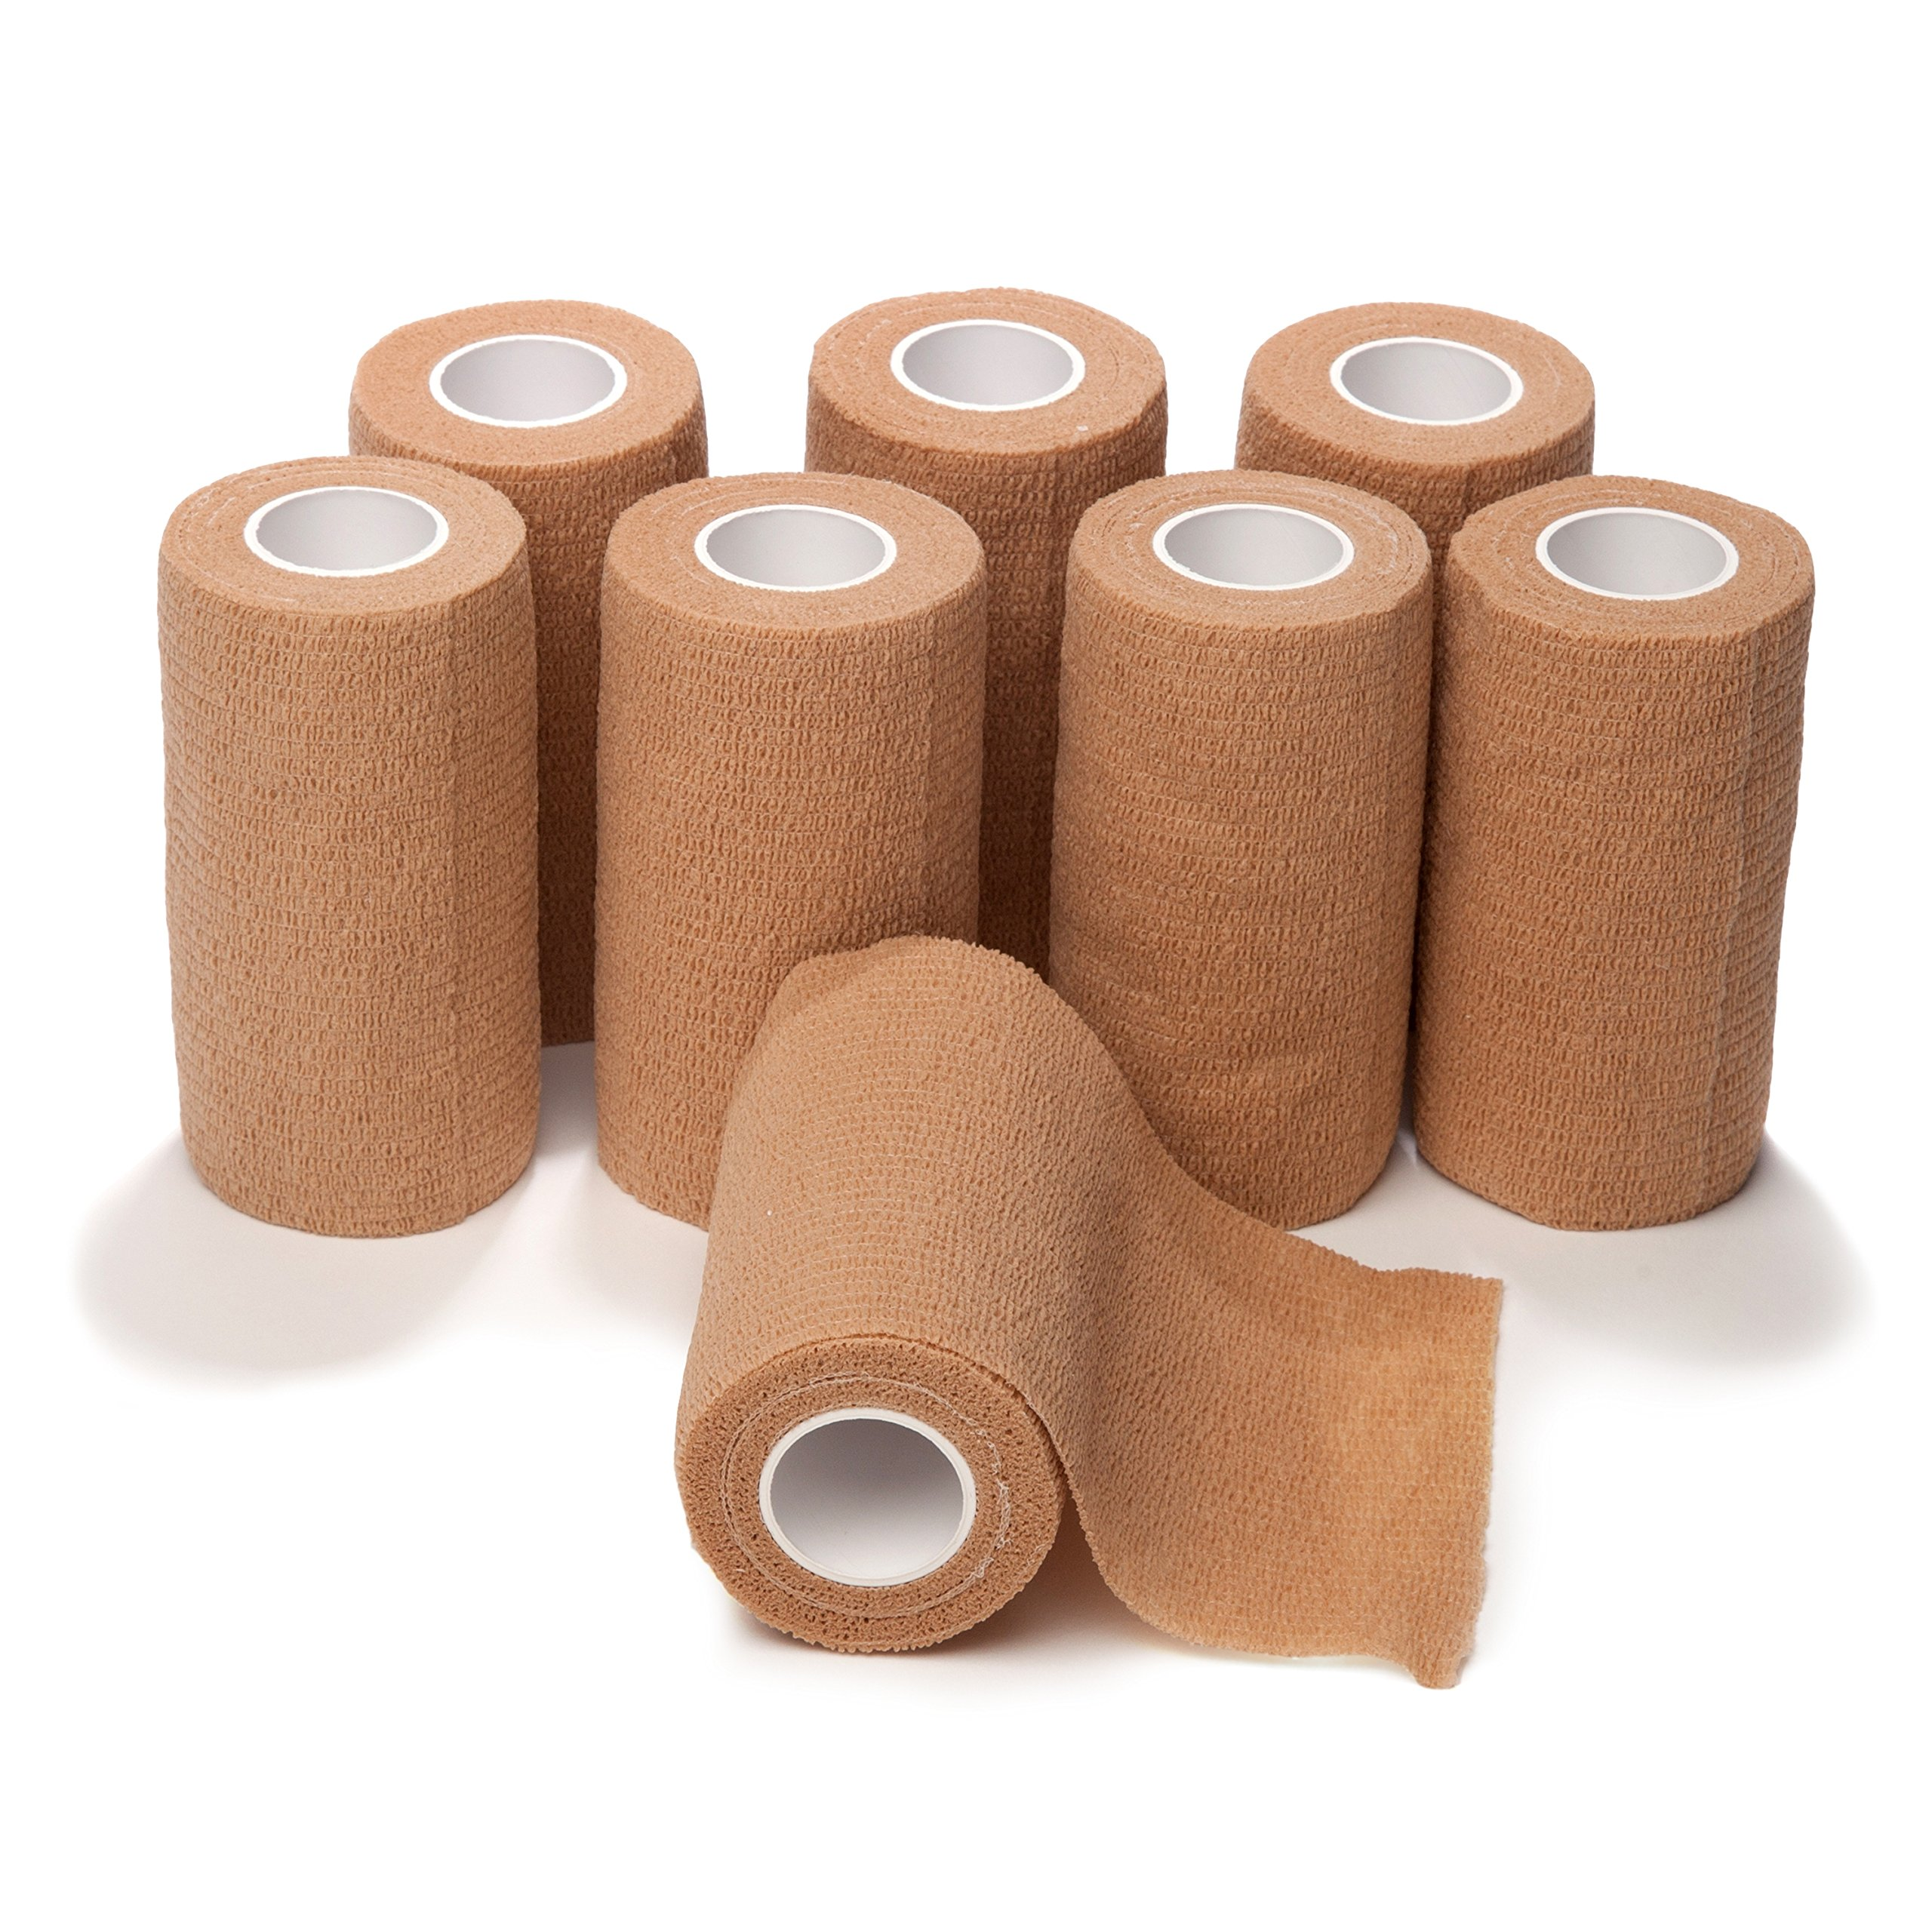 4-inch Wide Self Adherent Cohesive Wrap Bandages (8 Pack) Bundle, 5 yds Self Adhesive Non Woven Bandage Rolls, Brown Athletic Tape for Wrist, Ankle, Hand, Leg, Premium-Grade Medical Stretch Wrap by California Basics